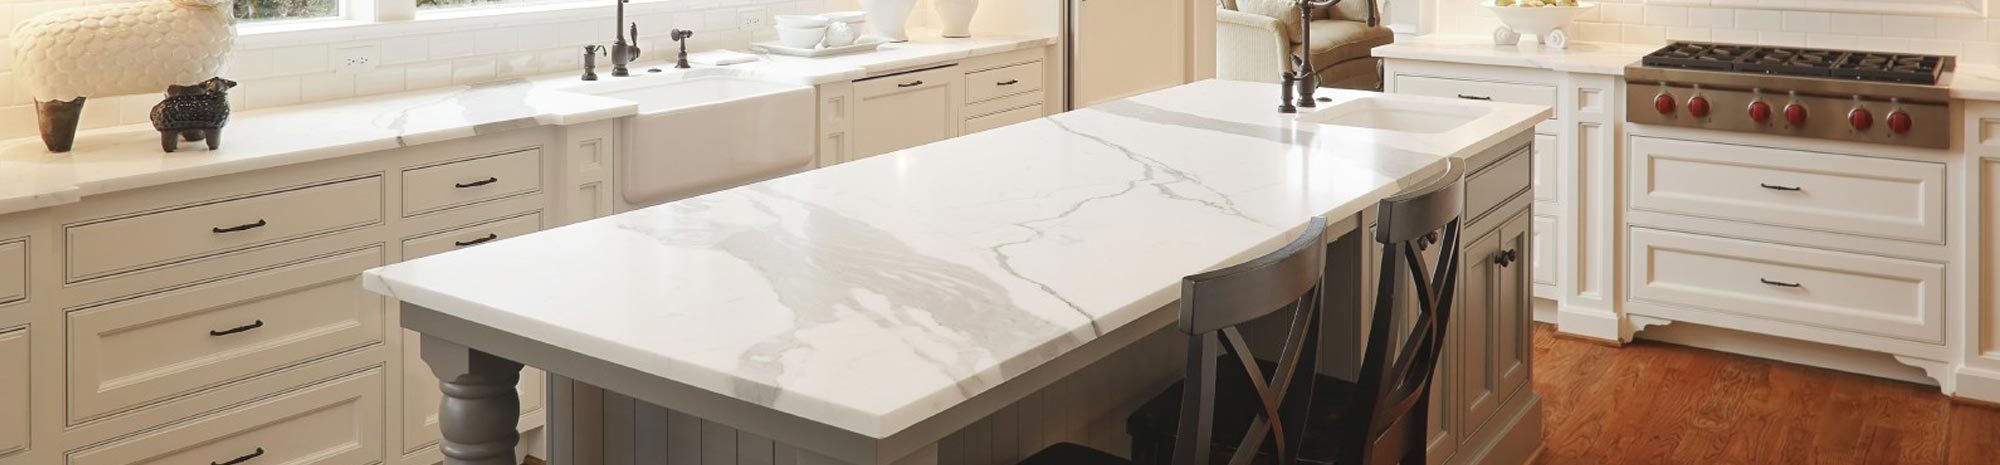 Chicago US White Marble Countertops : Licensed, Bonded and Insured